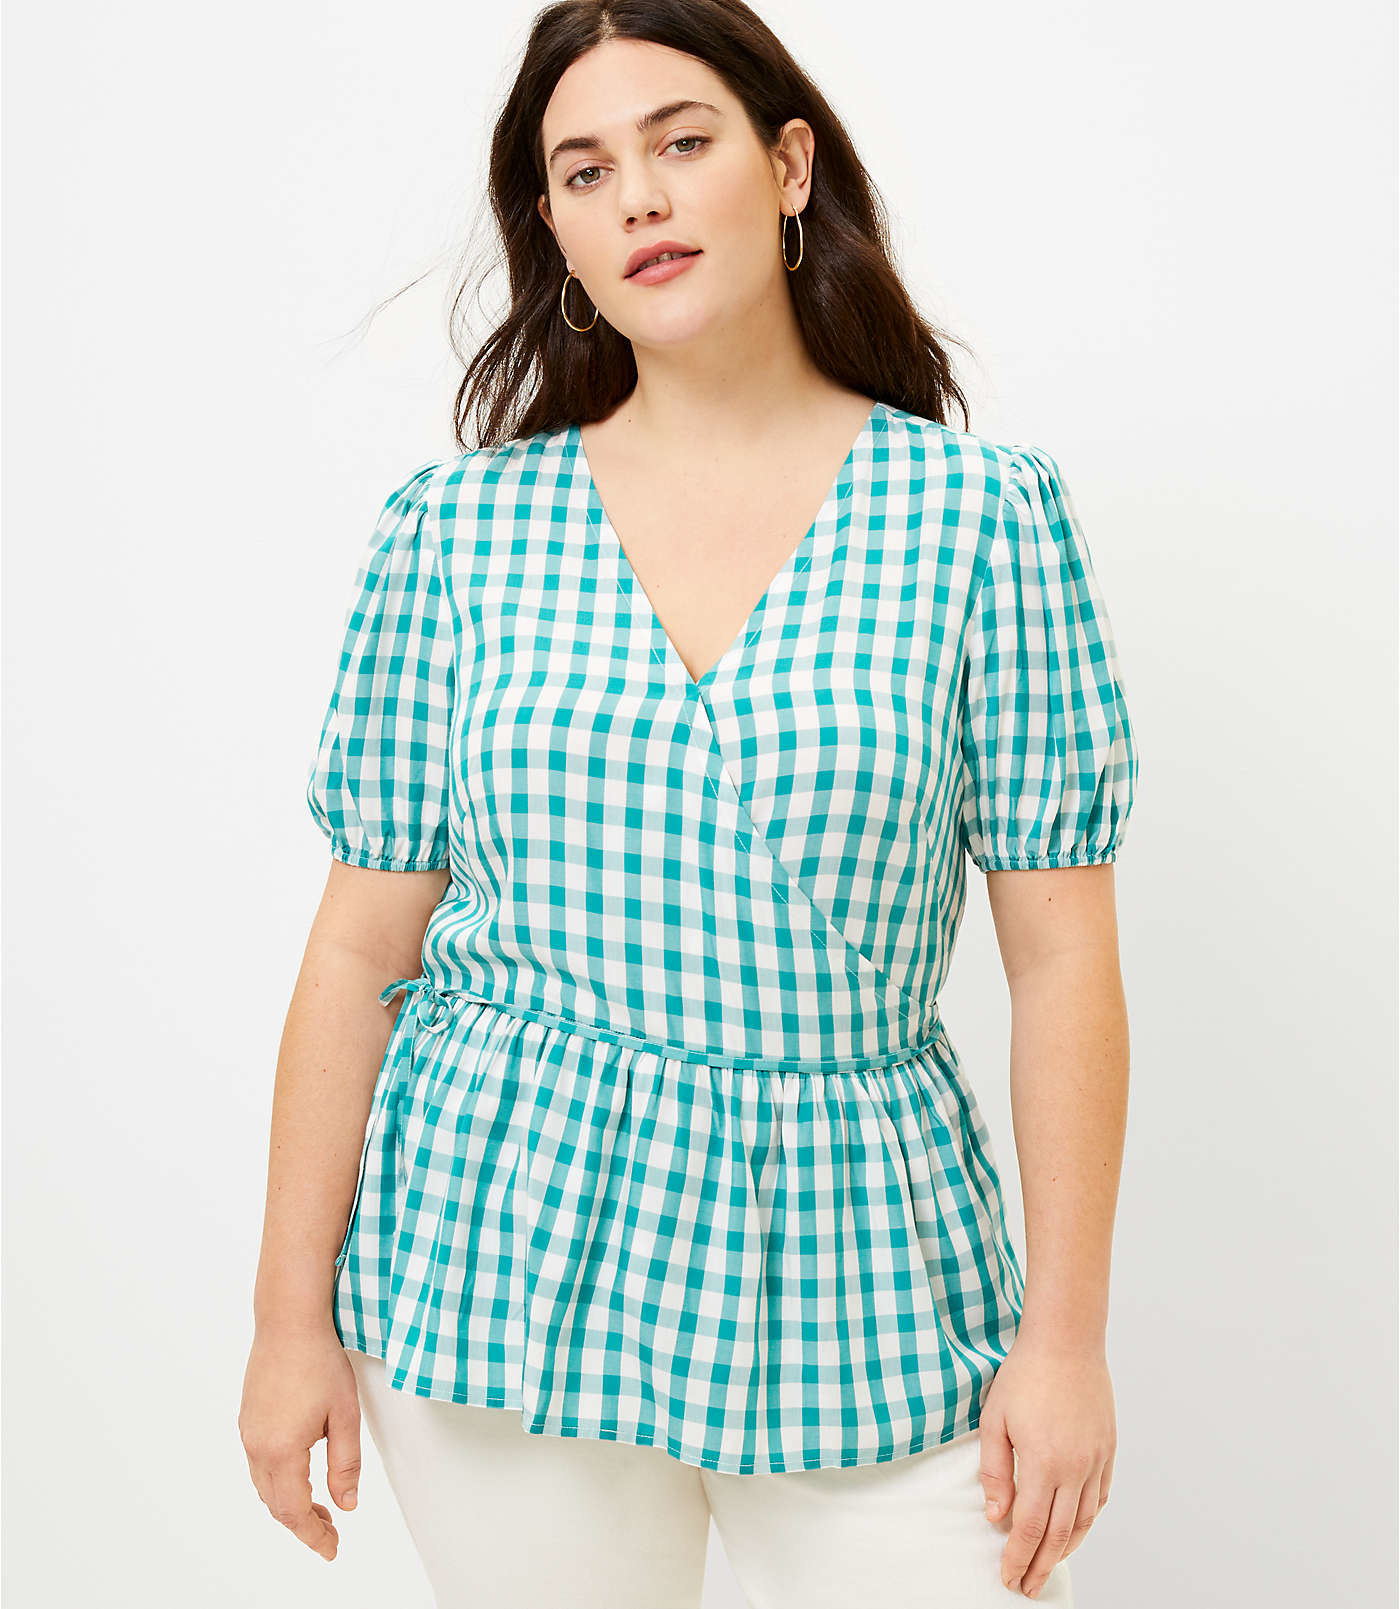 model wearing the blue and white gingham top